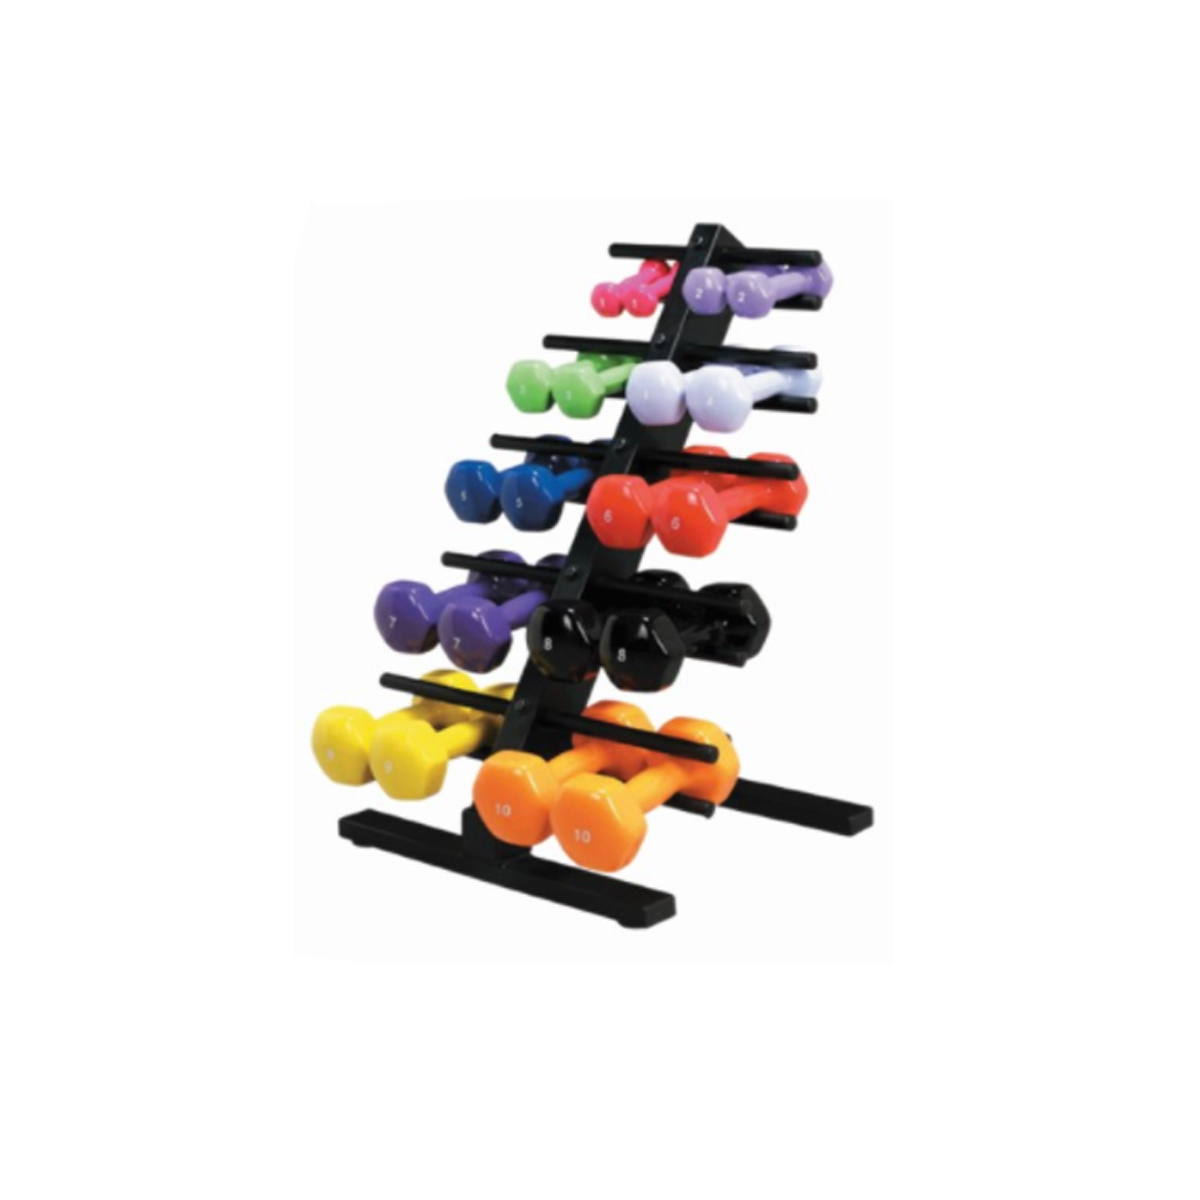 Colorful weights on a stand photo